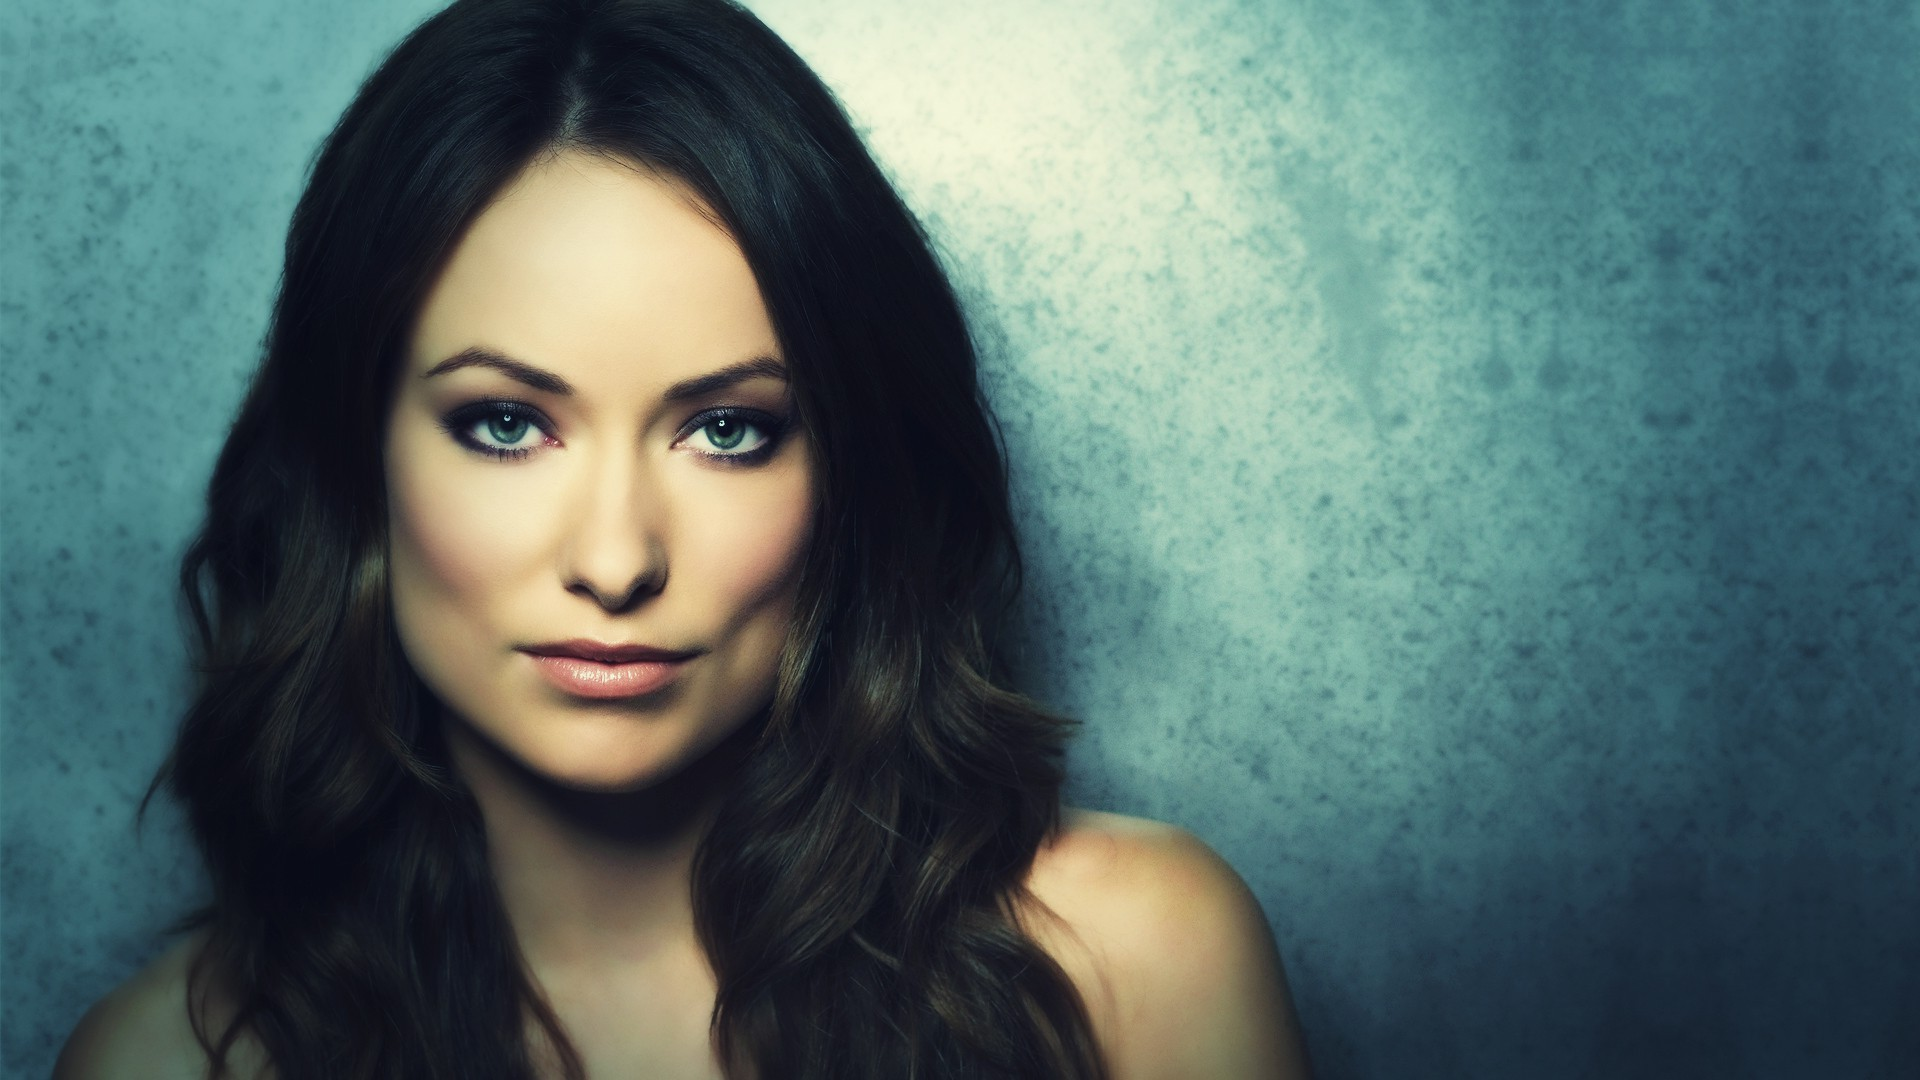 Olivia Wilde Wallpapers | Olivia Wilde Full HD Quality Wallpapers